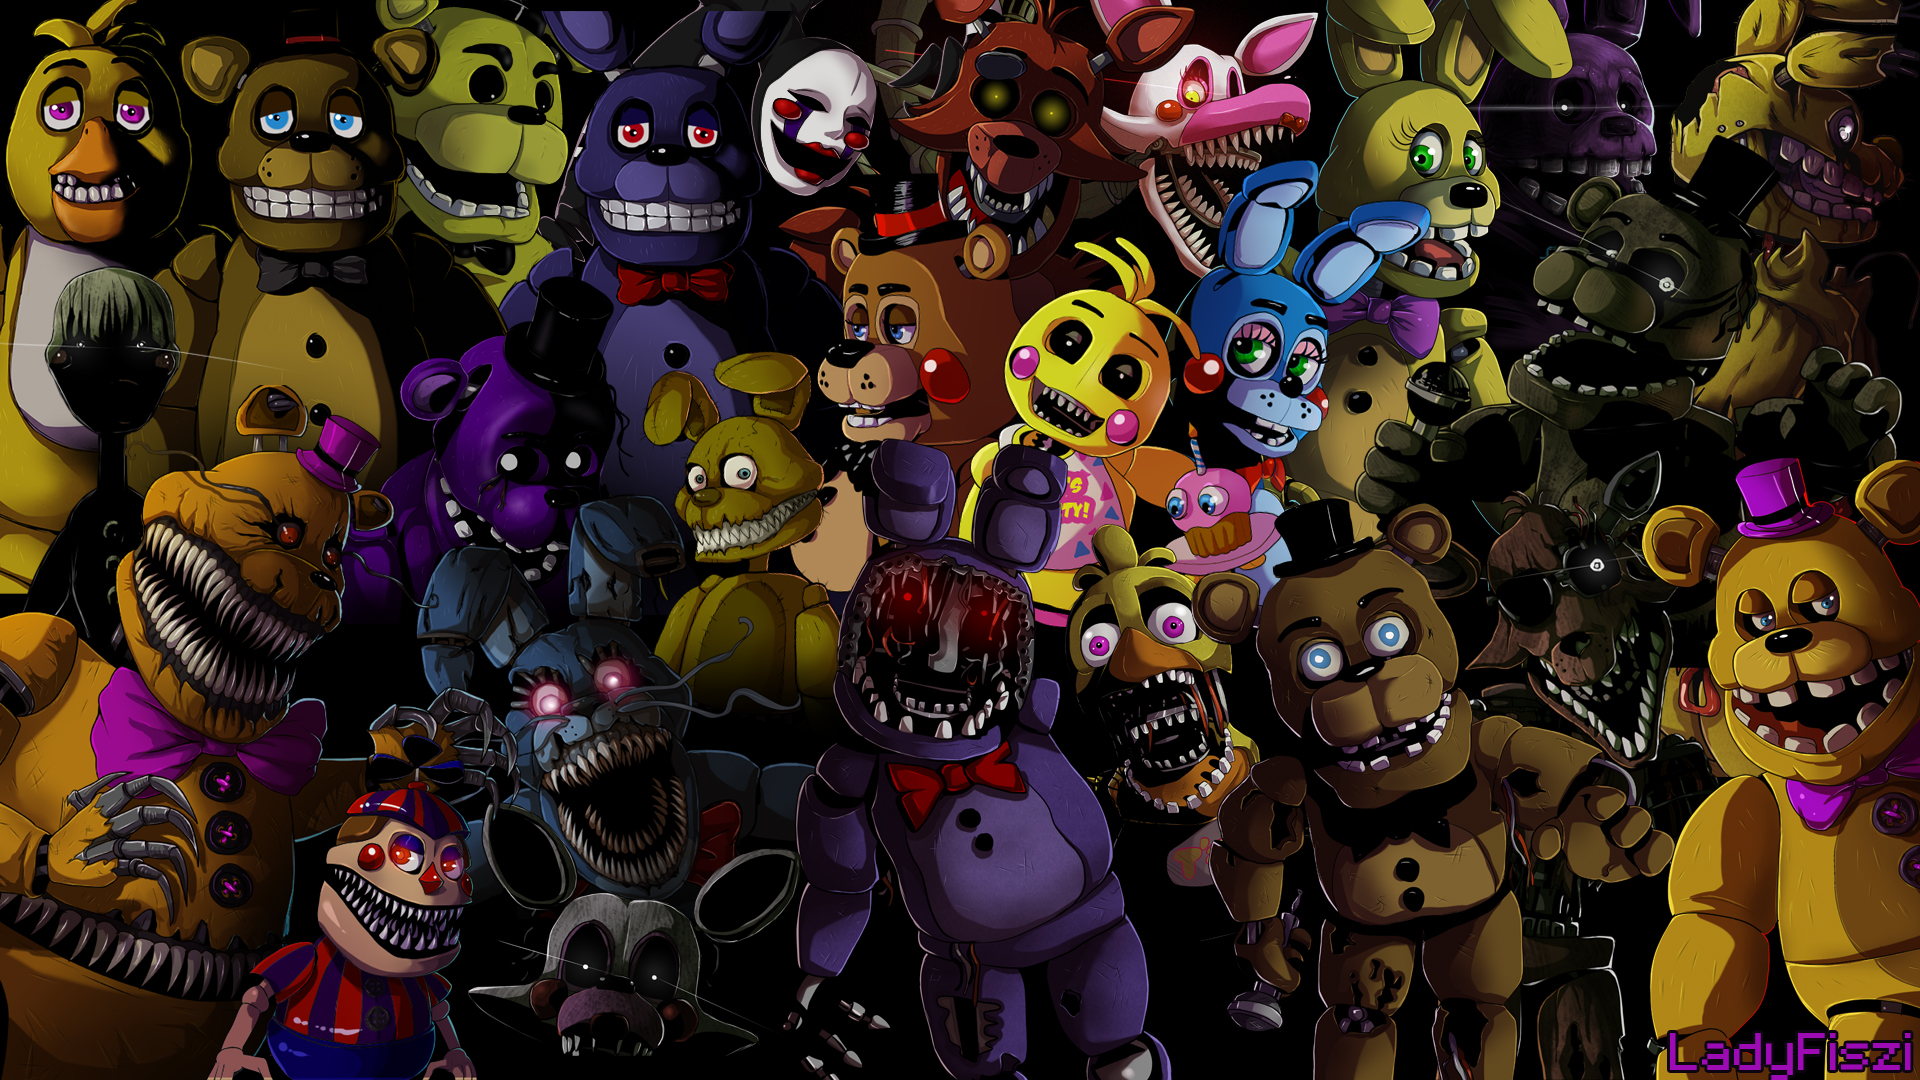 Most of the Five Nights at Freddy's Animatronics